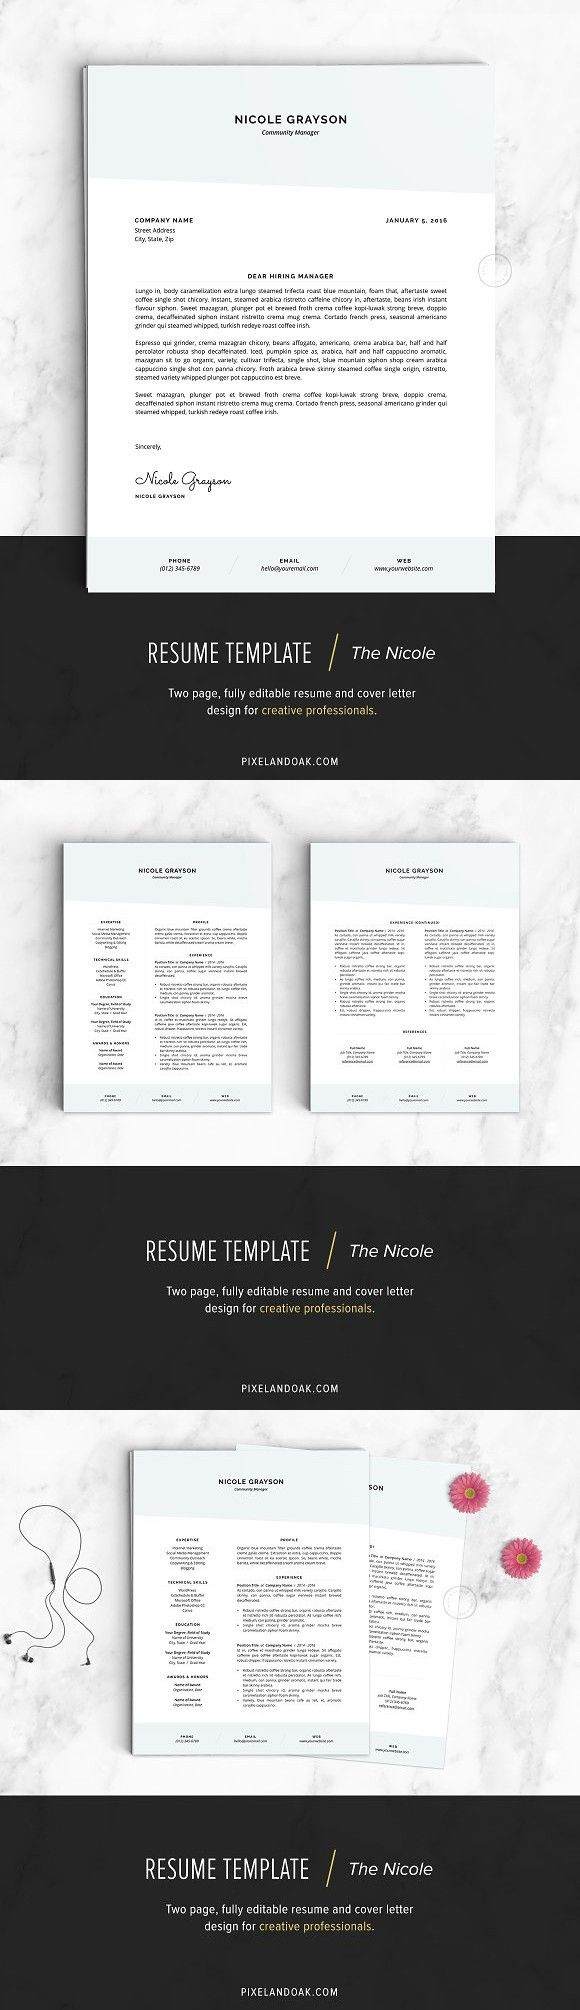 Resume Template | The Nicole #resume #coverletter | Resume ...